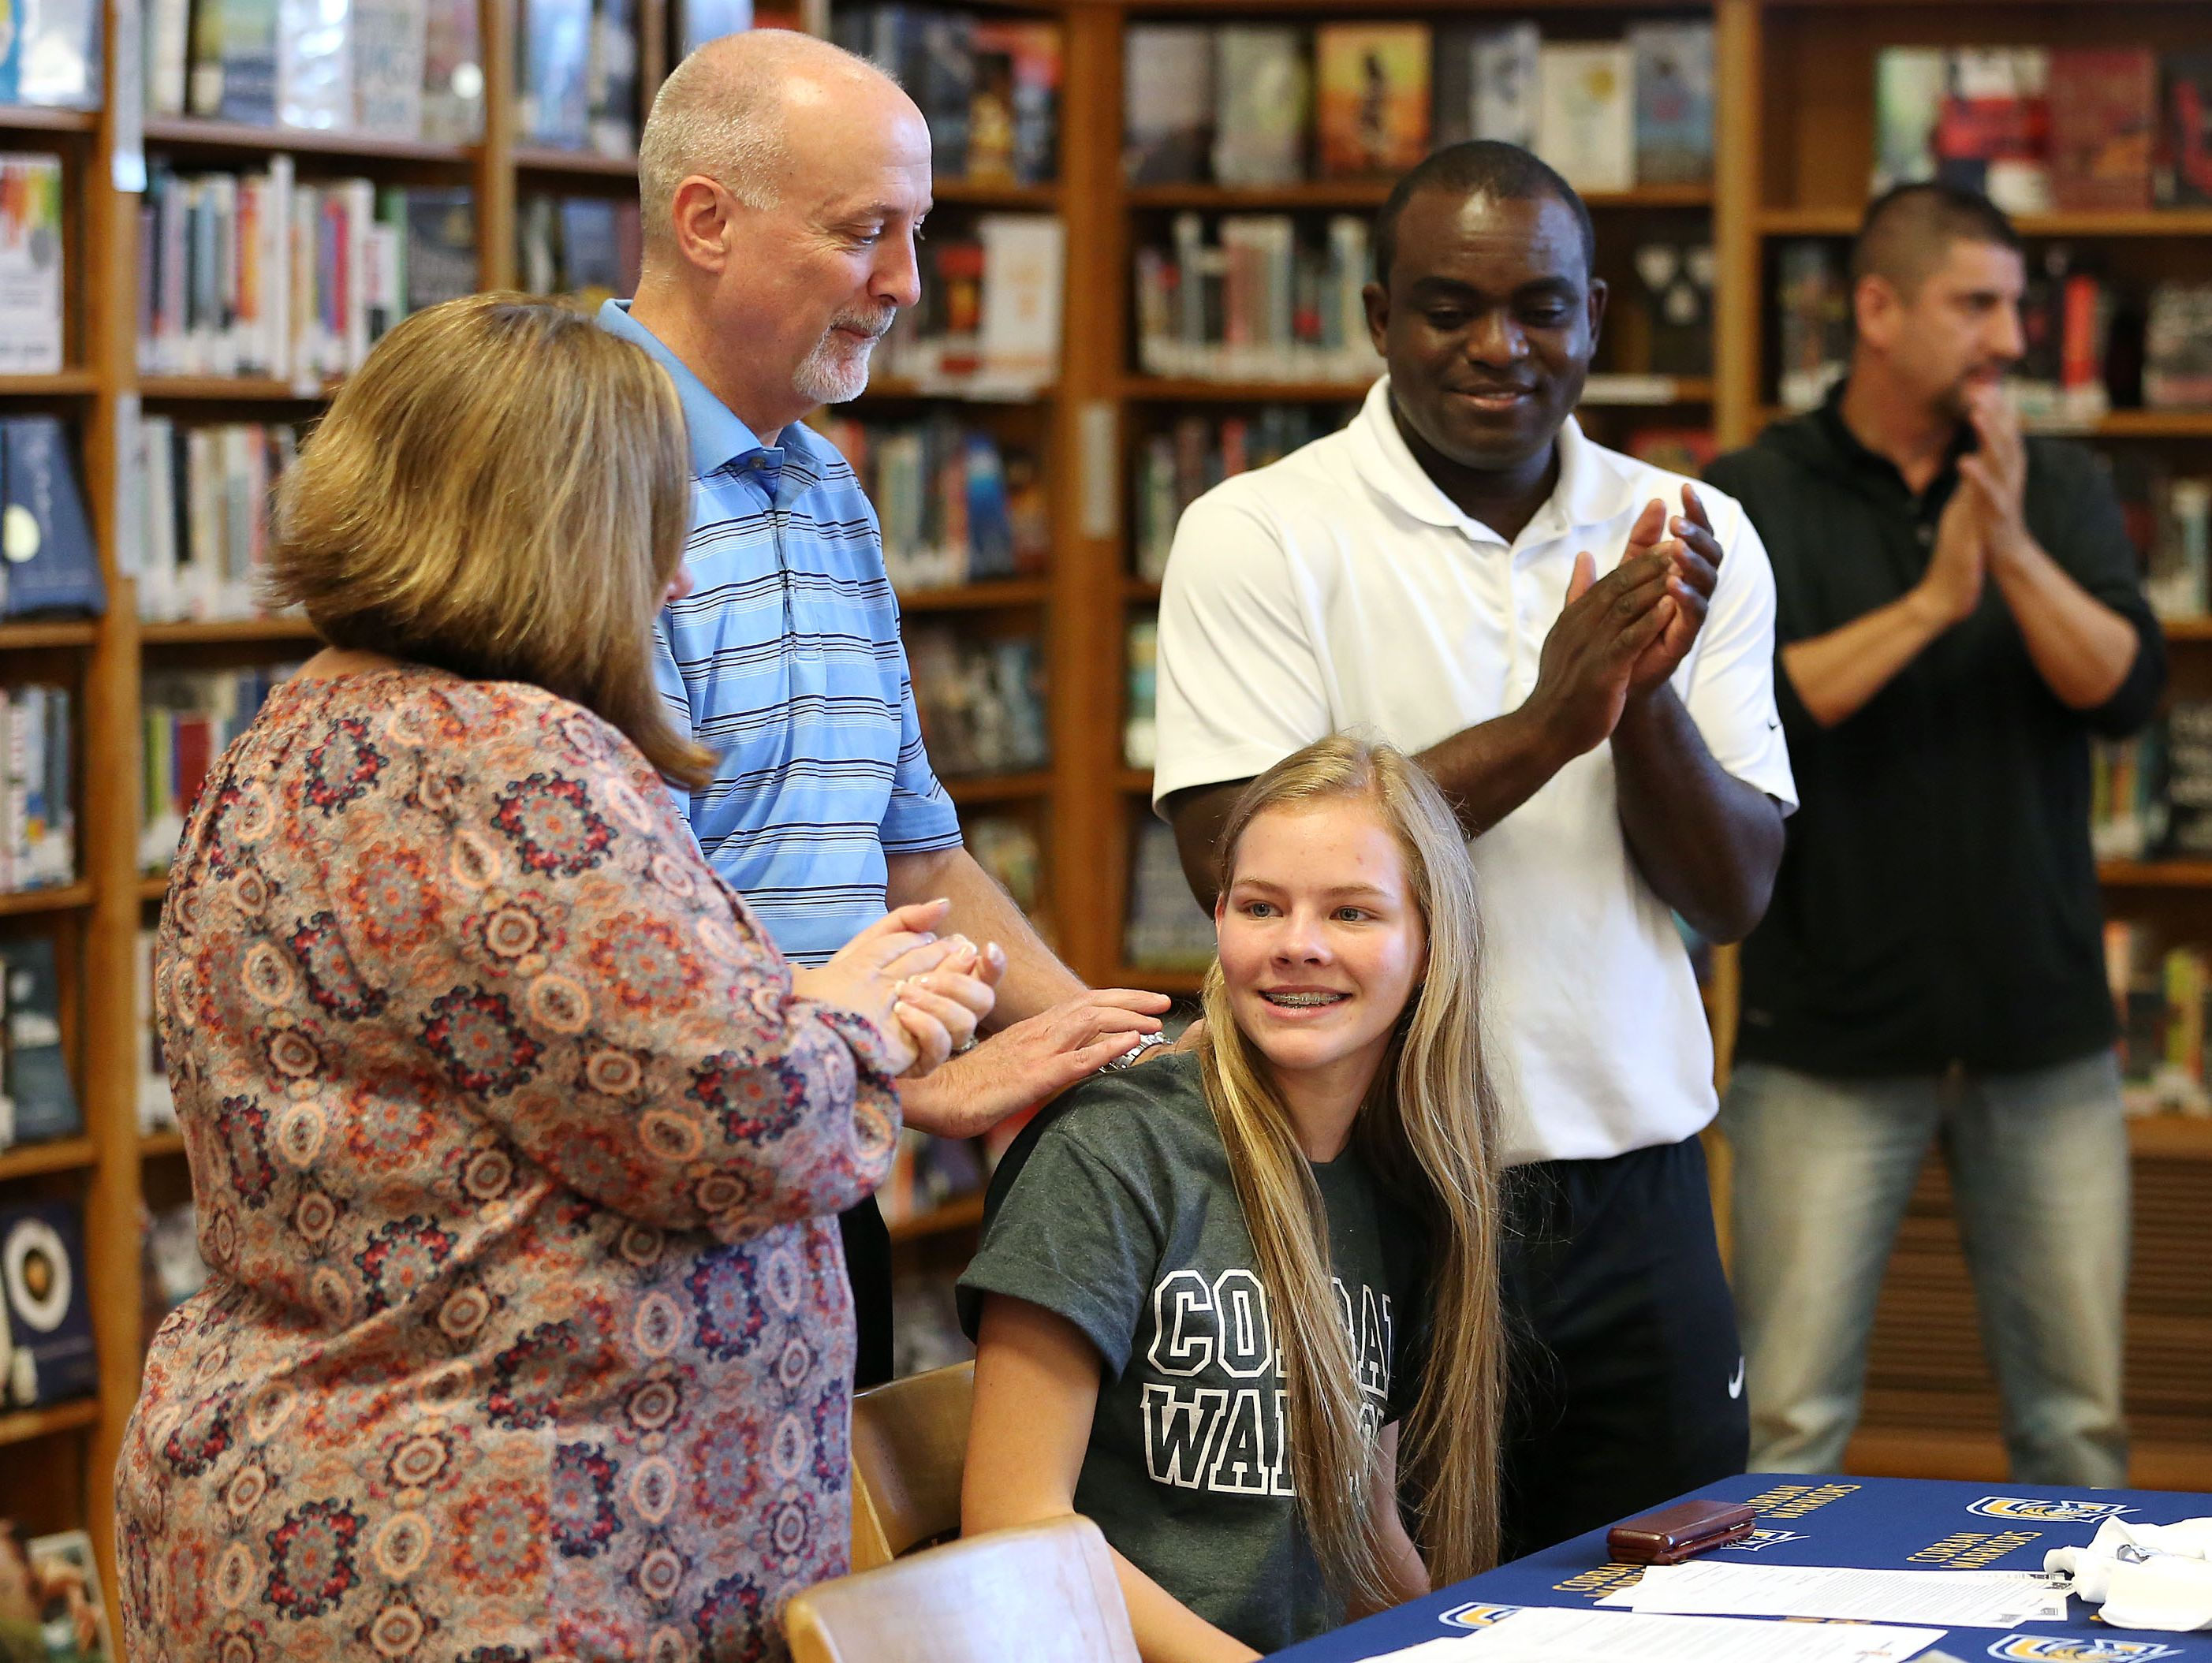 South Salem senior Hannah Hersh is surrounded by her parents, Ted and Dana Hersh, and Likius Hafemi, Corban University women's soccer head coach, as she signs a letter of intent to play soccer at Corban during a signing ceremony on Tuesday, Nov. 8, 2016, at South Salem High School.